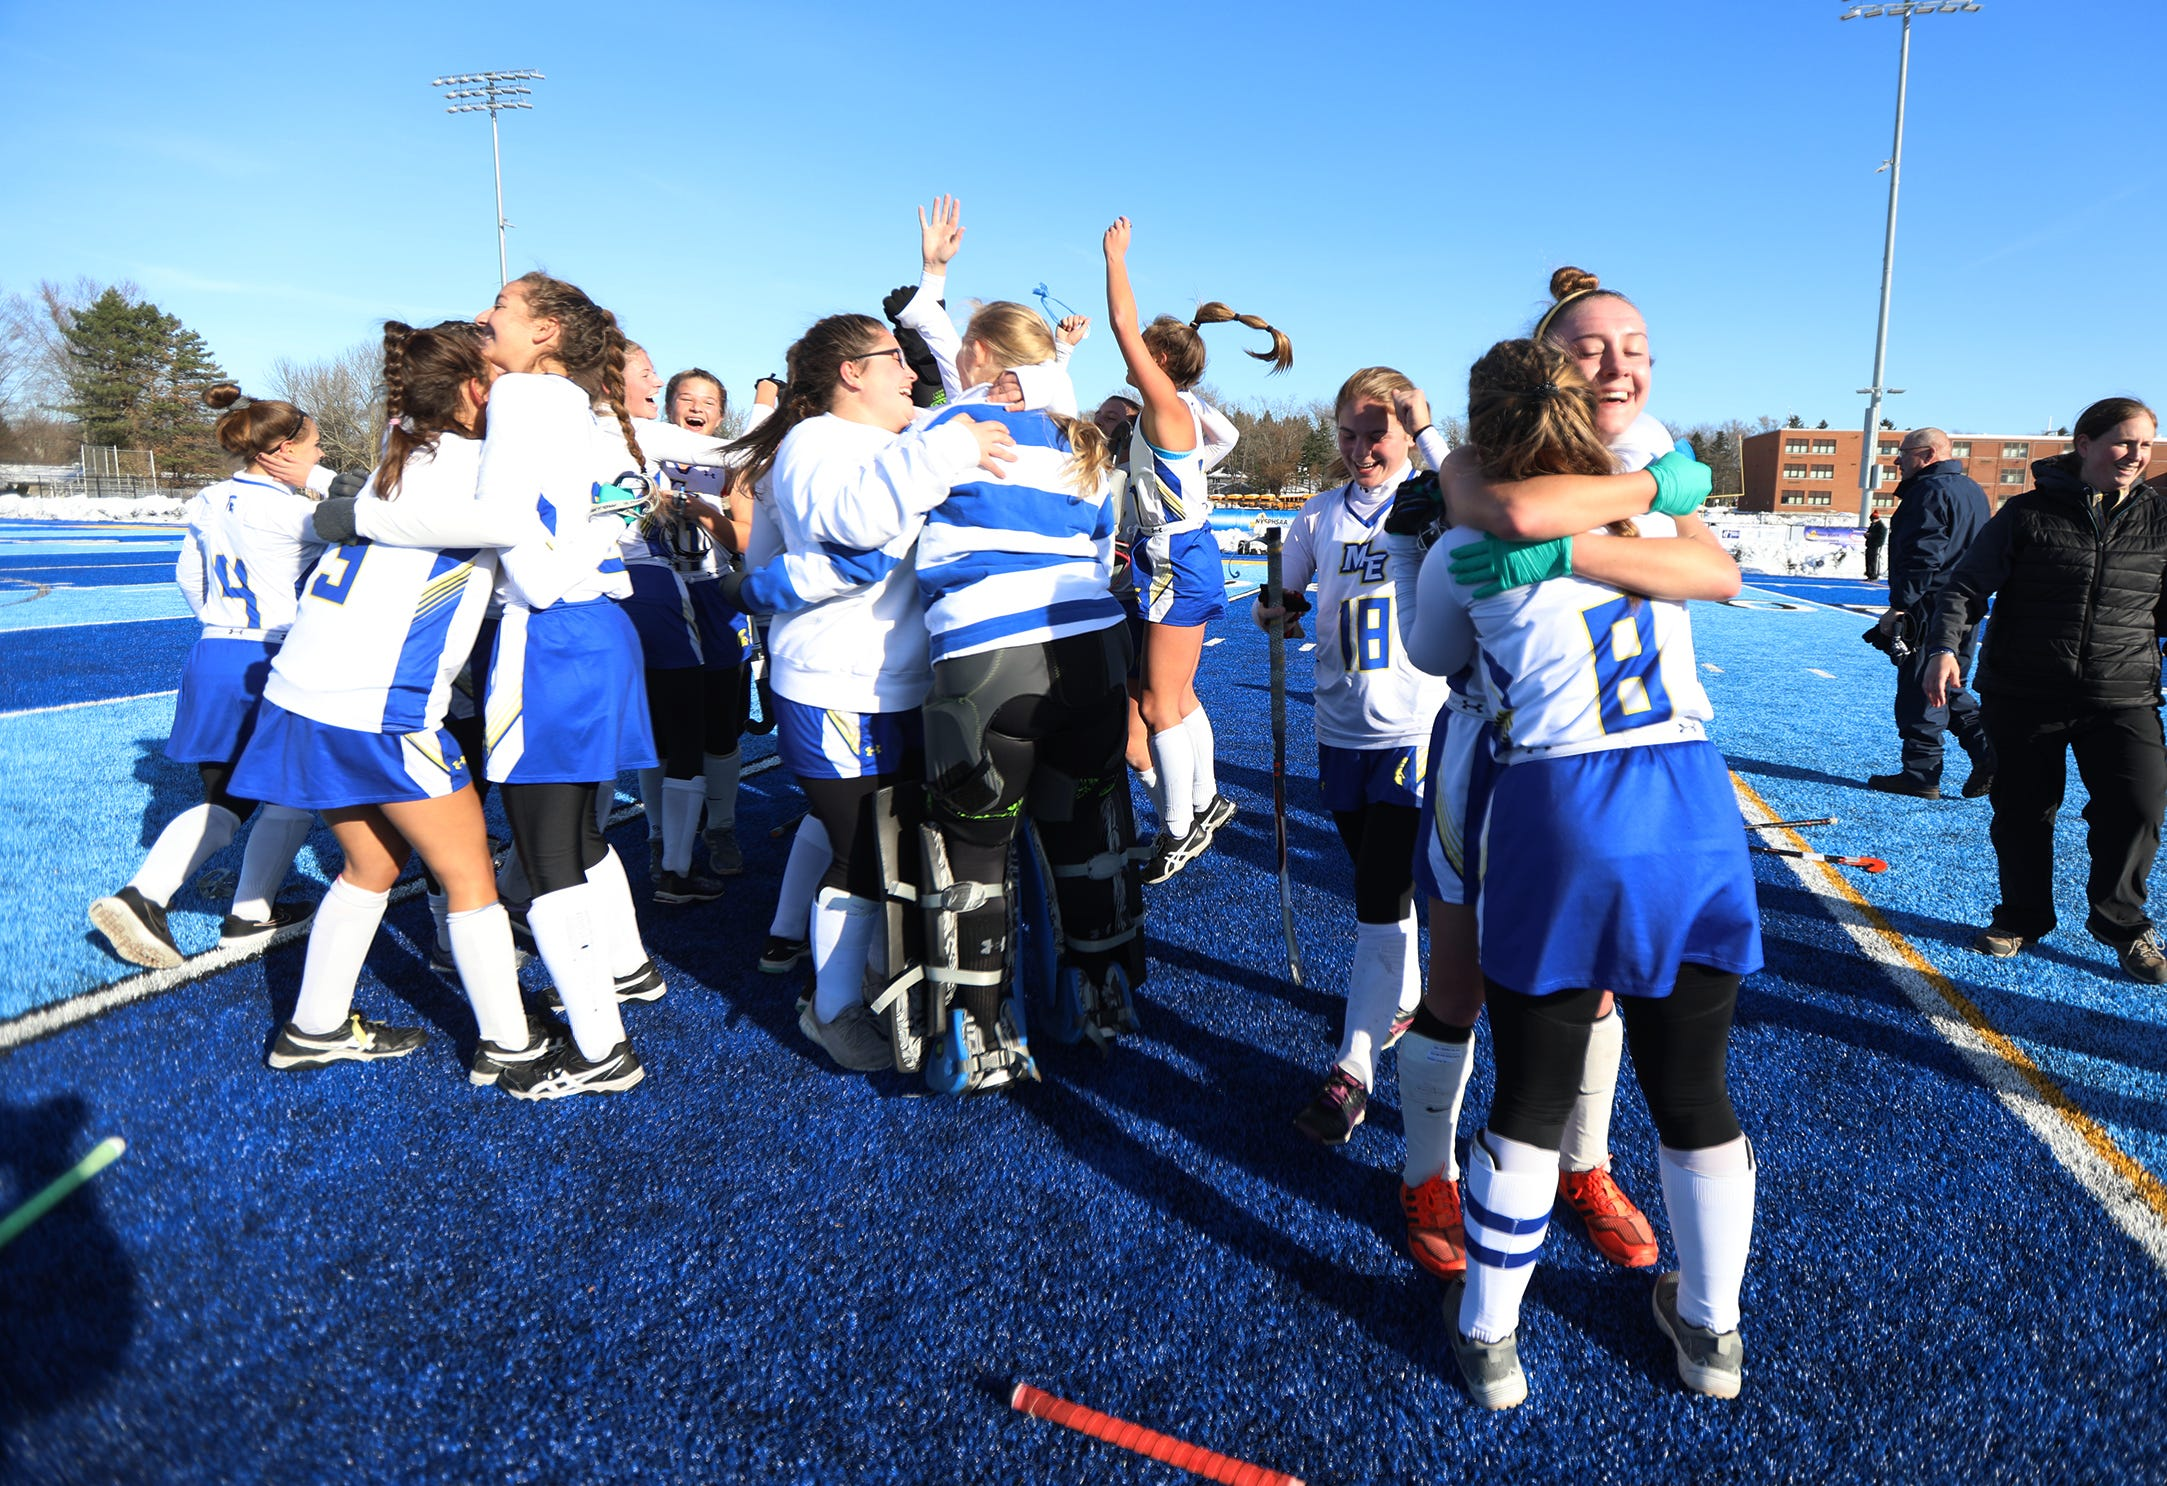 Class A field hockey: Maine-Endwell repeats as state champion - Democrat & Chronicle